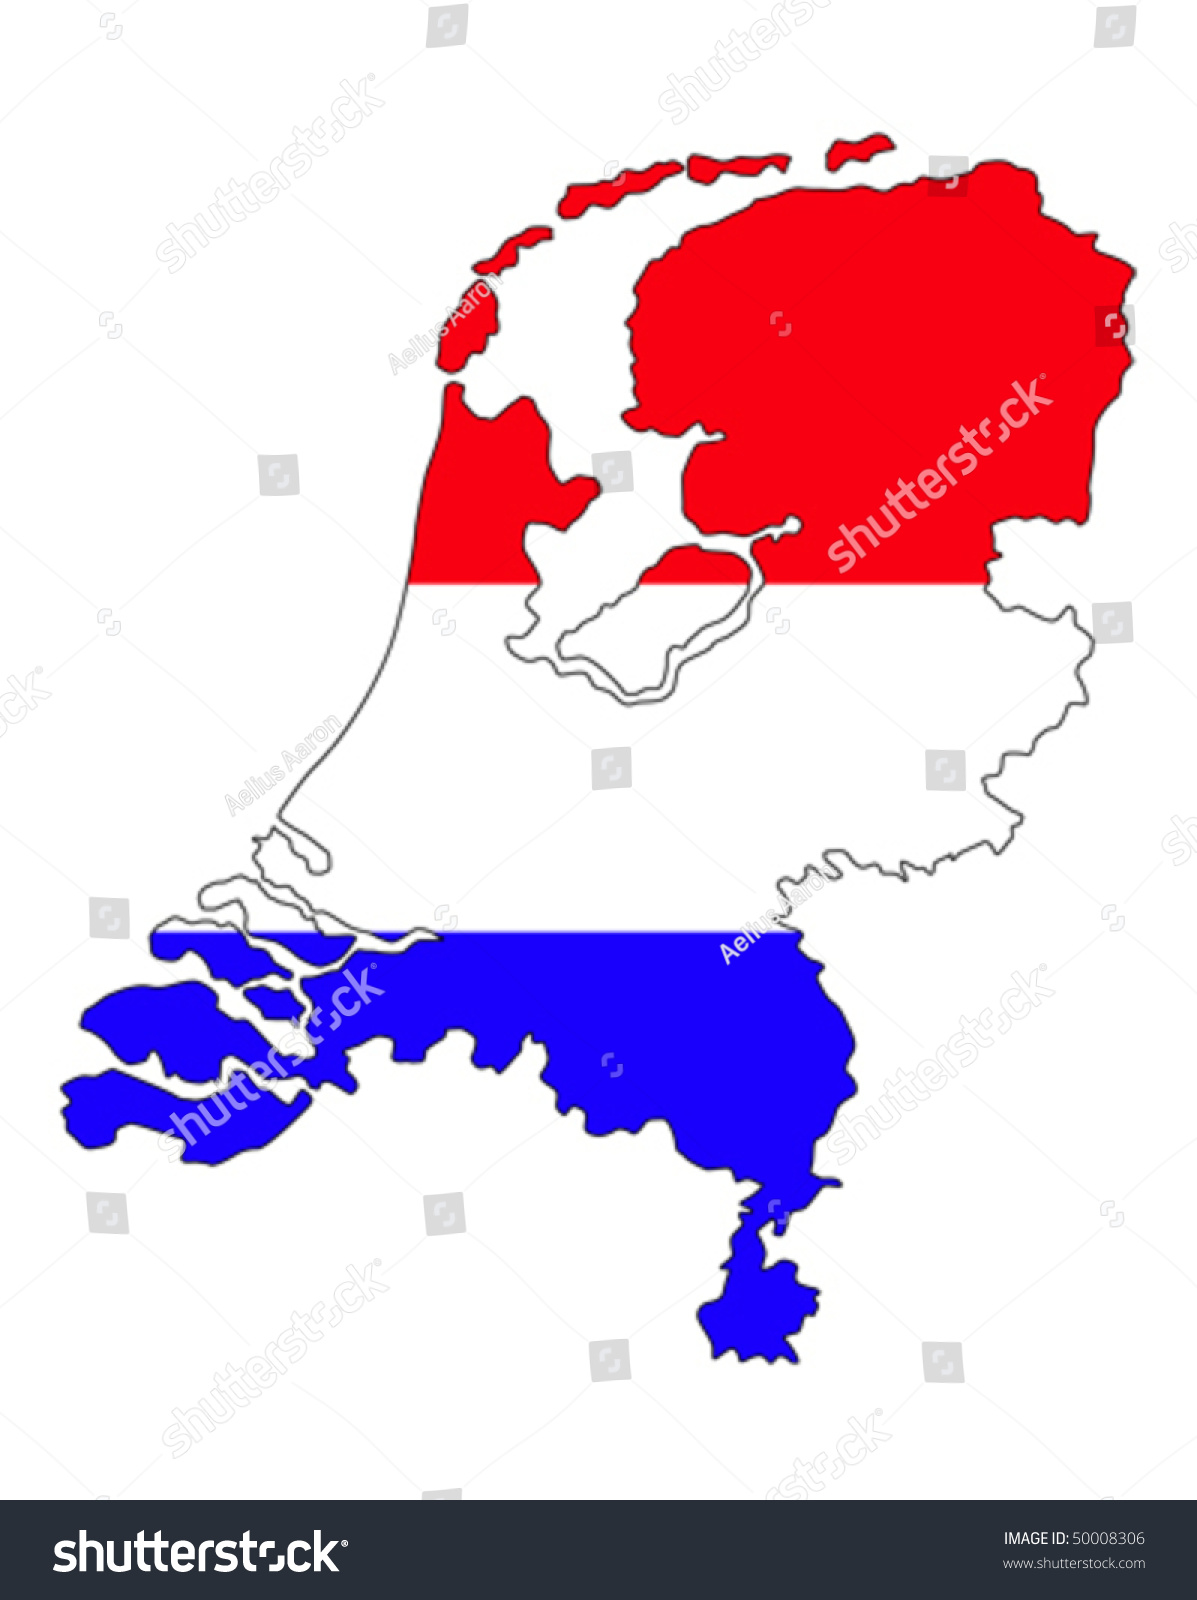 Netherlands borders map 28 images netherlands country border netherlands gumiabroncs Choice Image